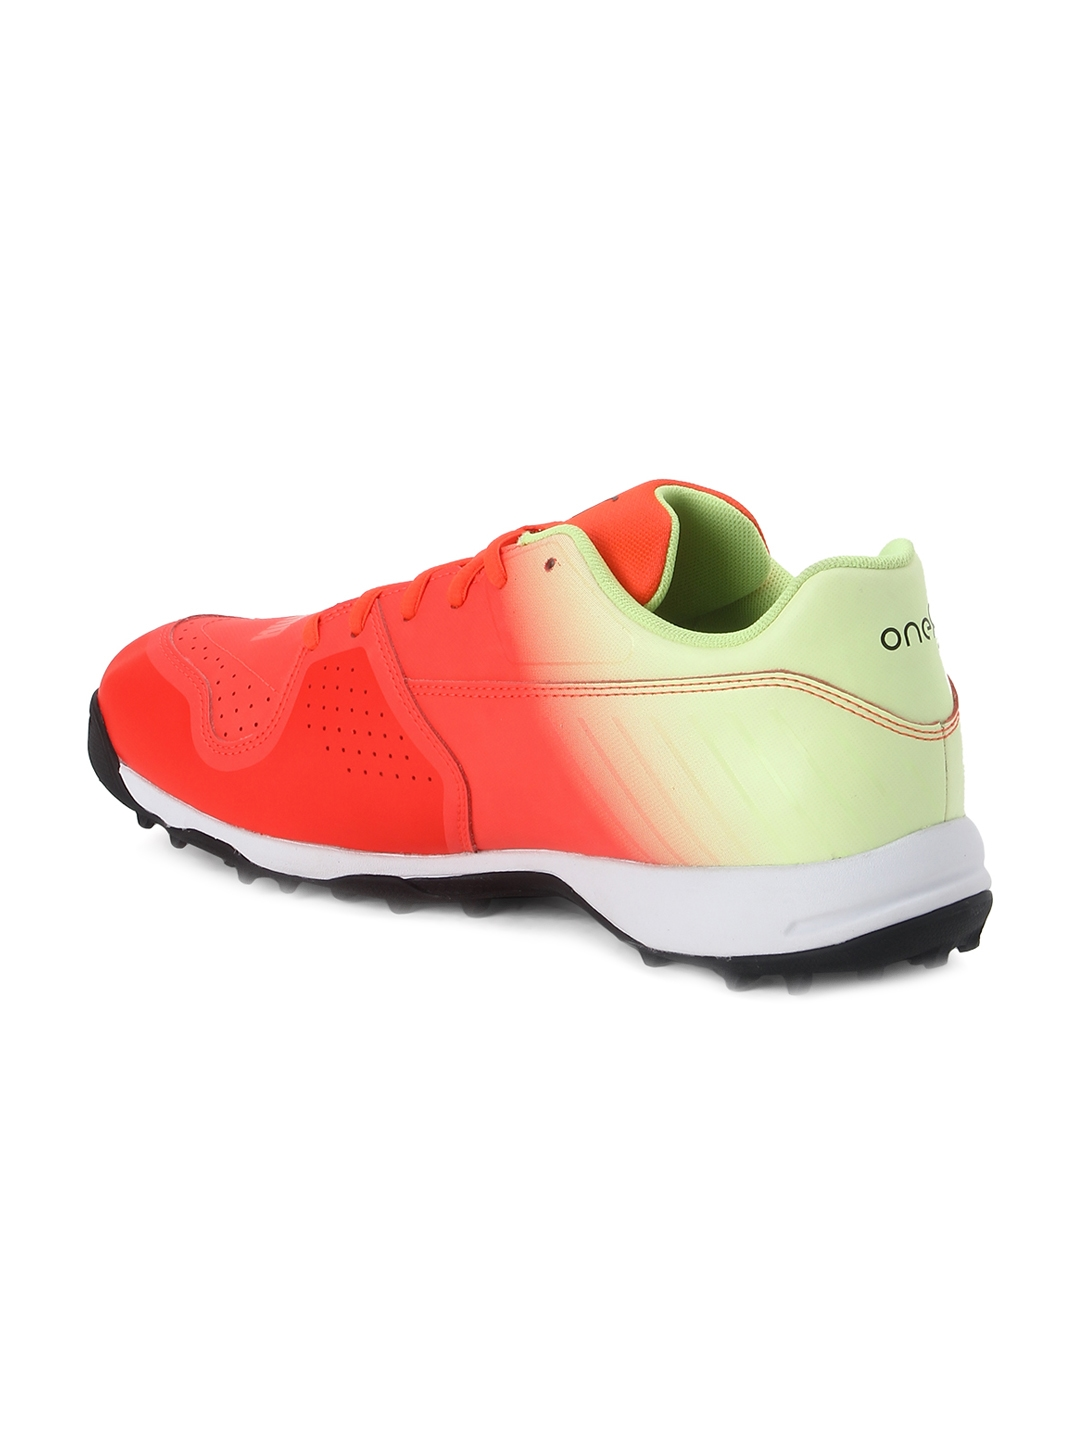 aa4204a0668124 Buy One8 X PUMA Men Red Cricket Shoes - Sports Shoes for Men 4714271 ...